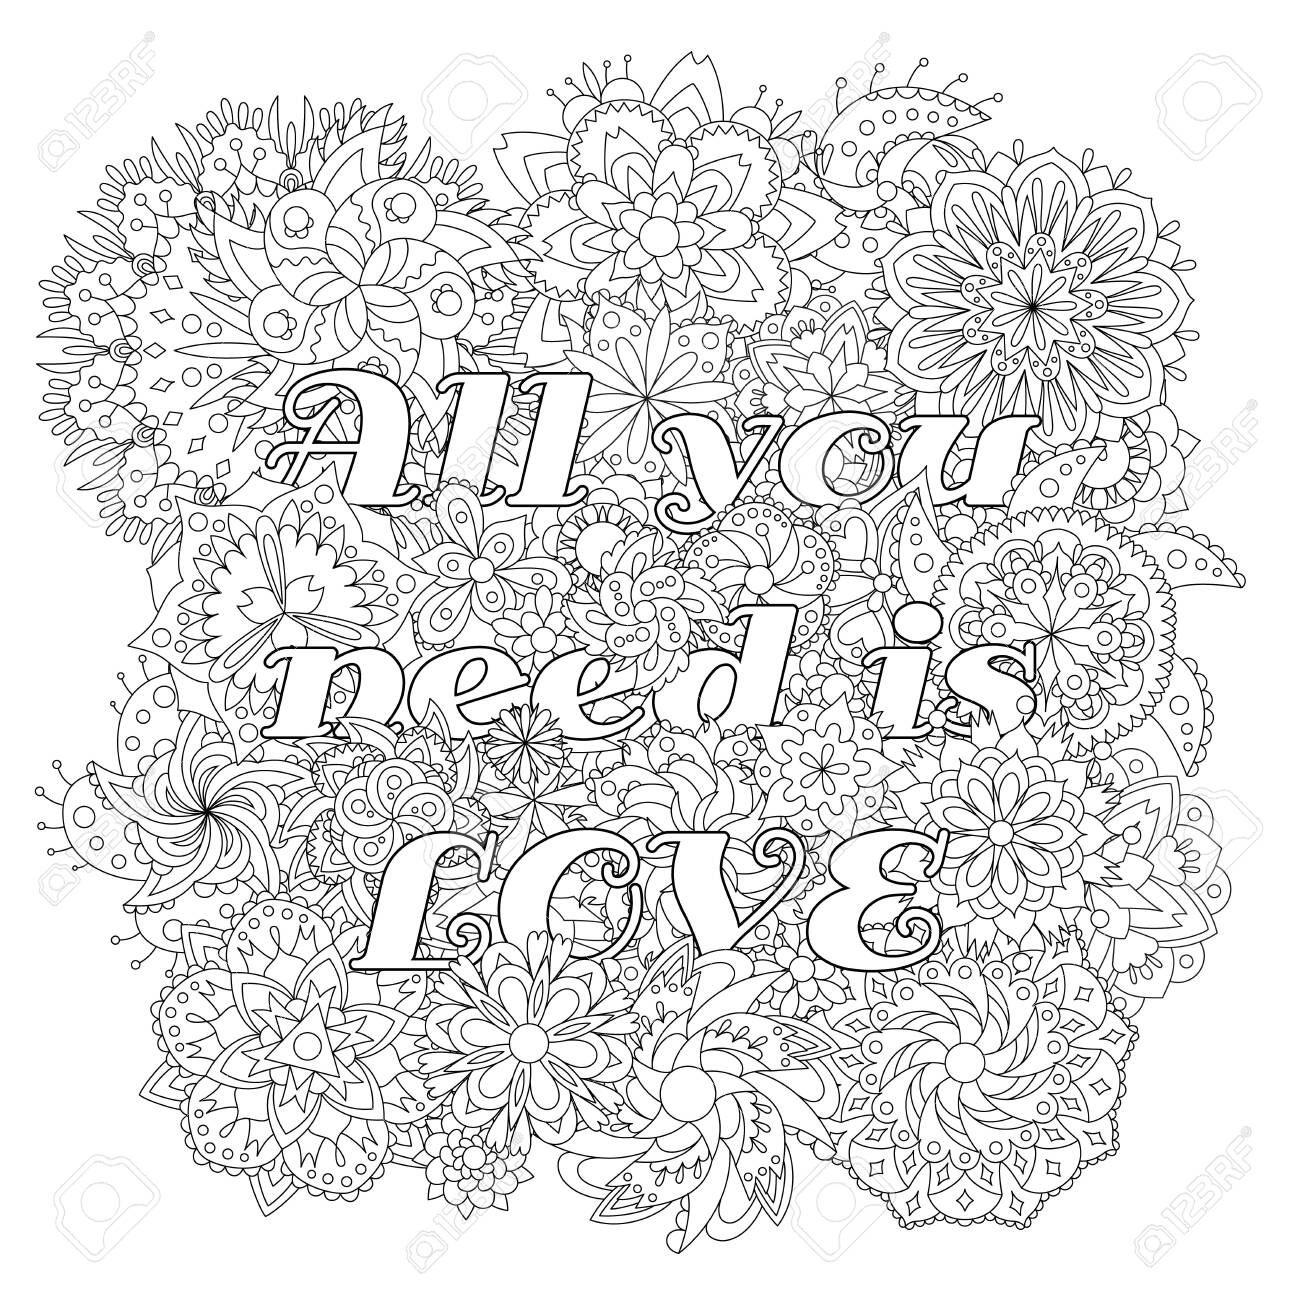 Vector coloring book for adults with inspiring text and mandala flowers in the zentagle style. All you need is love - 147797439